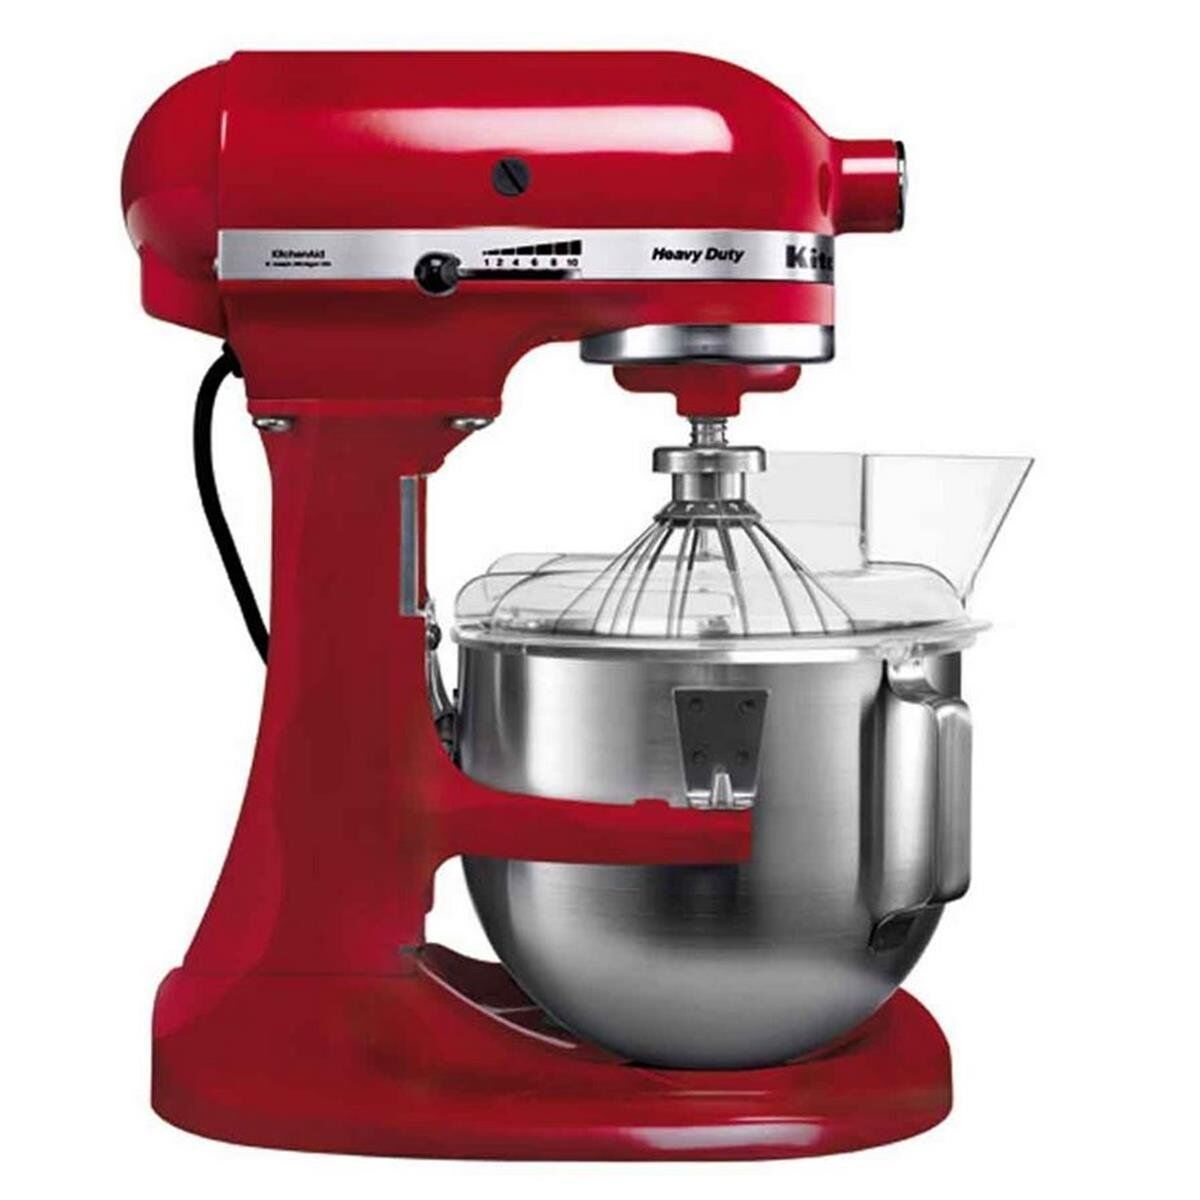 KitchenAid ARTISAN Küchenmaschine 5KSM175PS 4,8 Liter